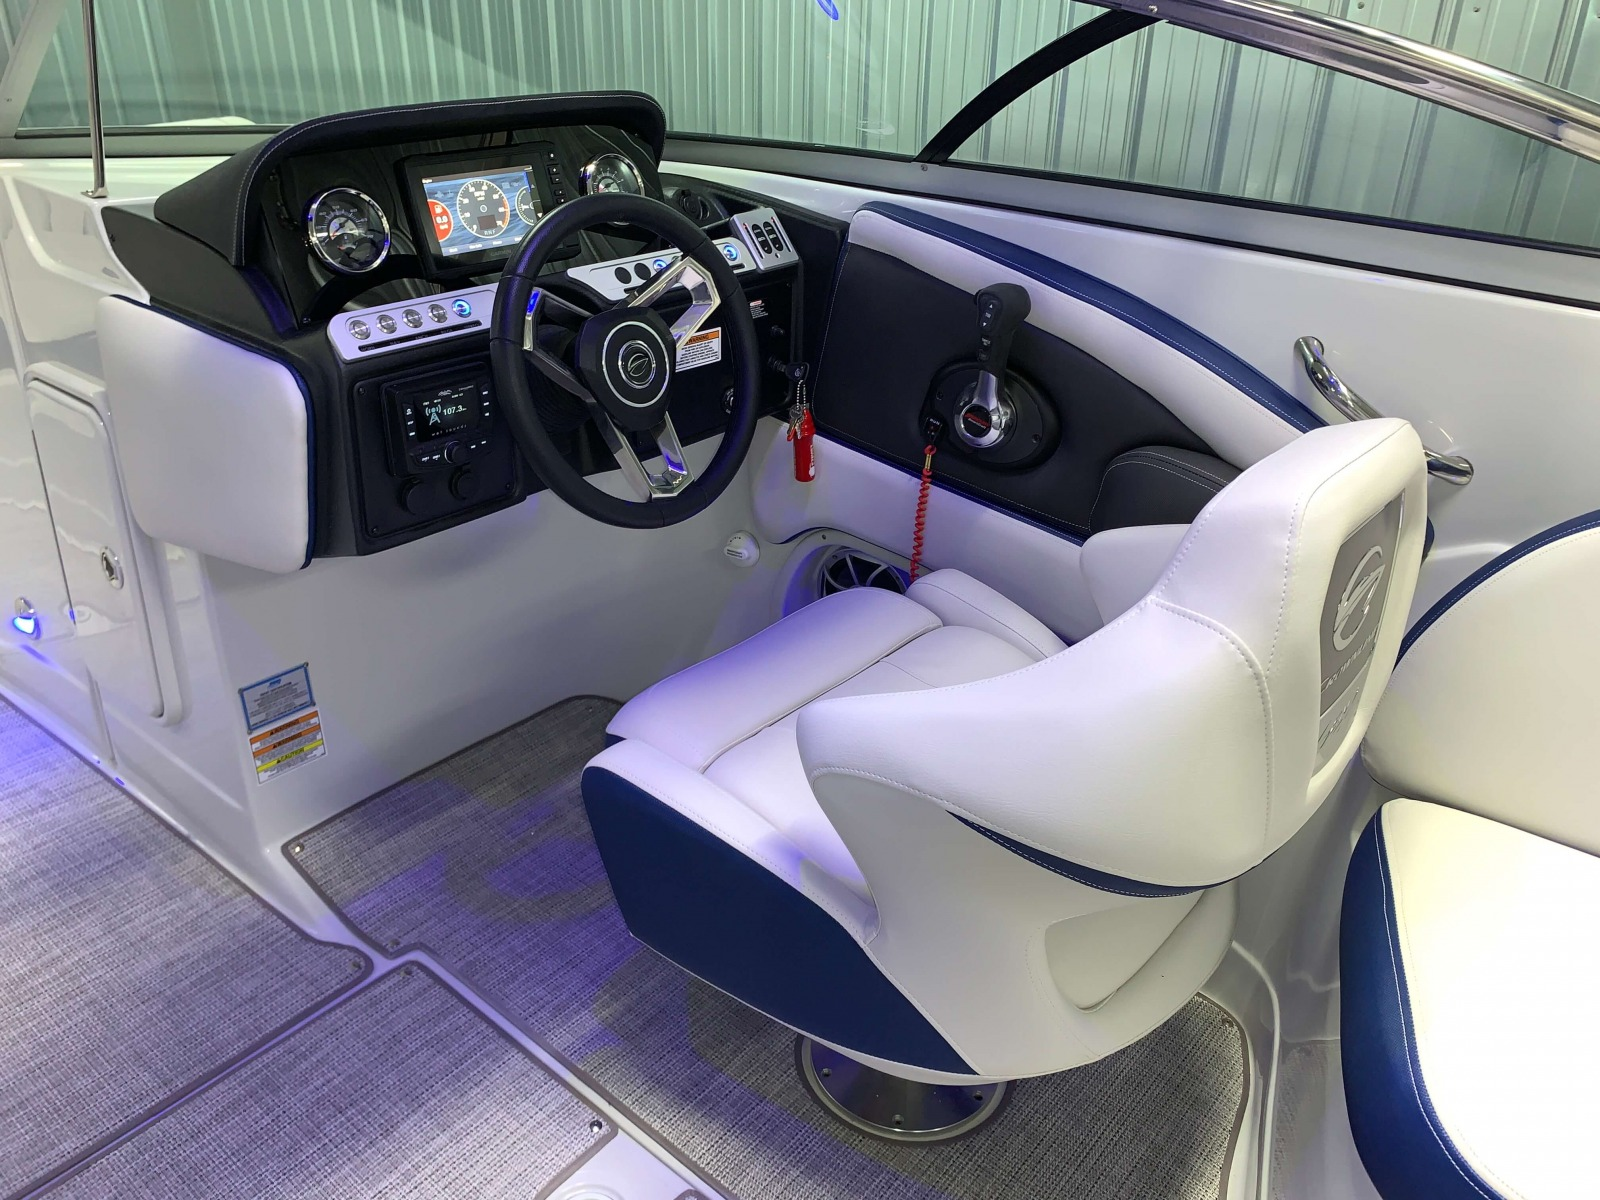 Black Accented Helm of the 2021 Crownline 265 SS Bowrider Boat